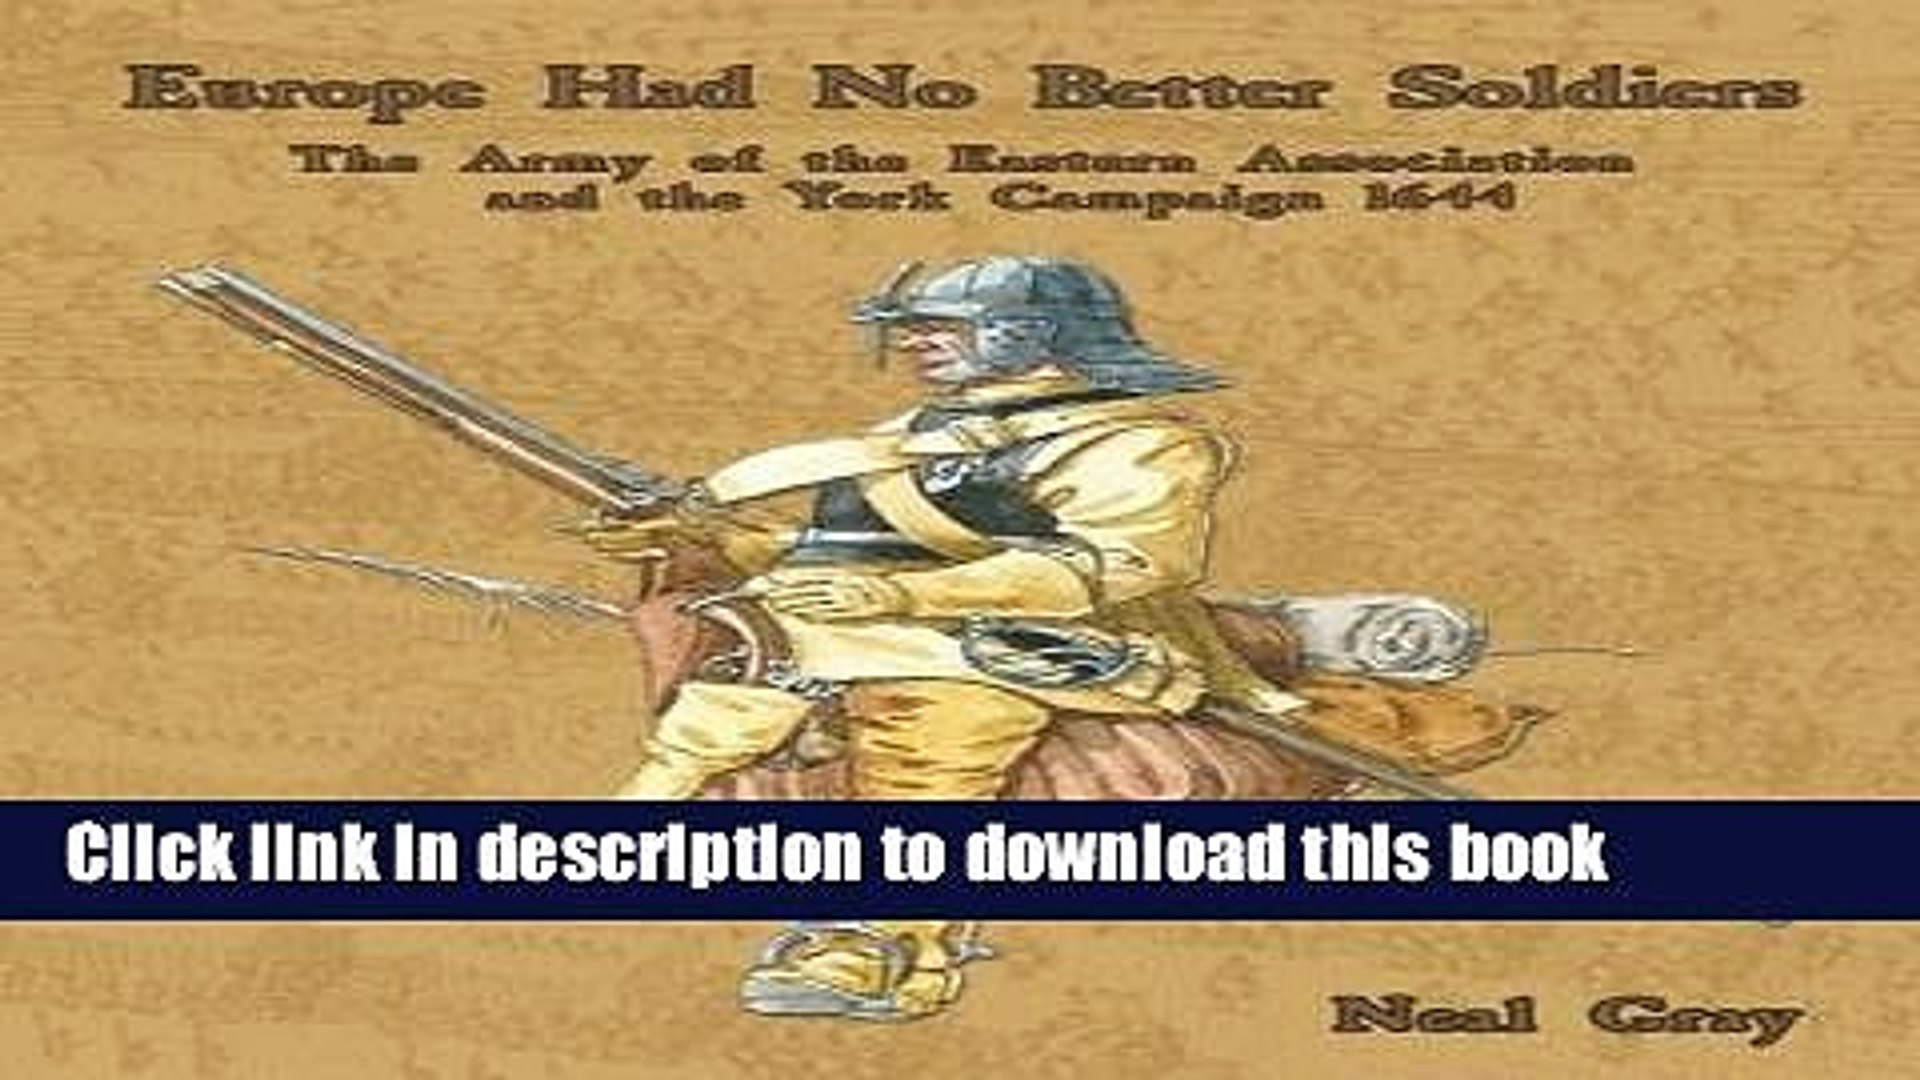 Read Europe Had No Better Soldiers: The Army of the Eastern Association and the York Campaign